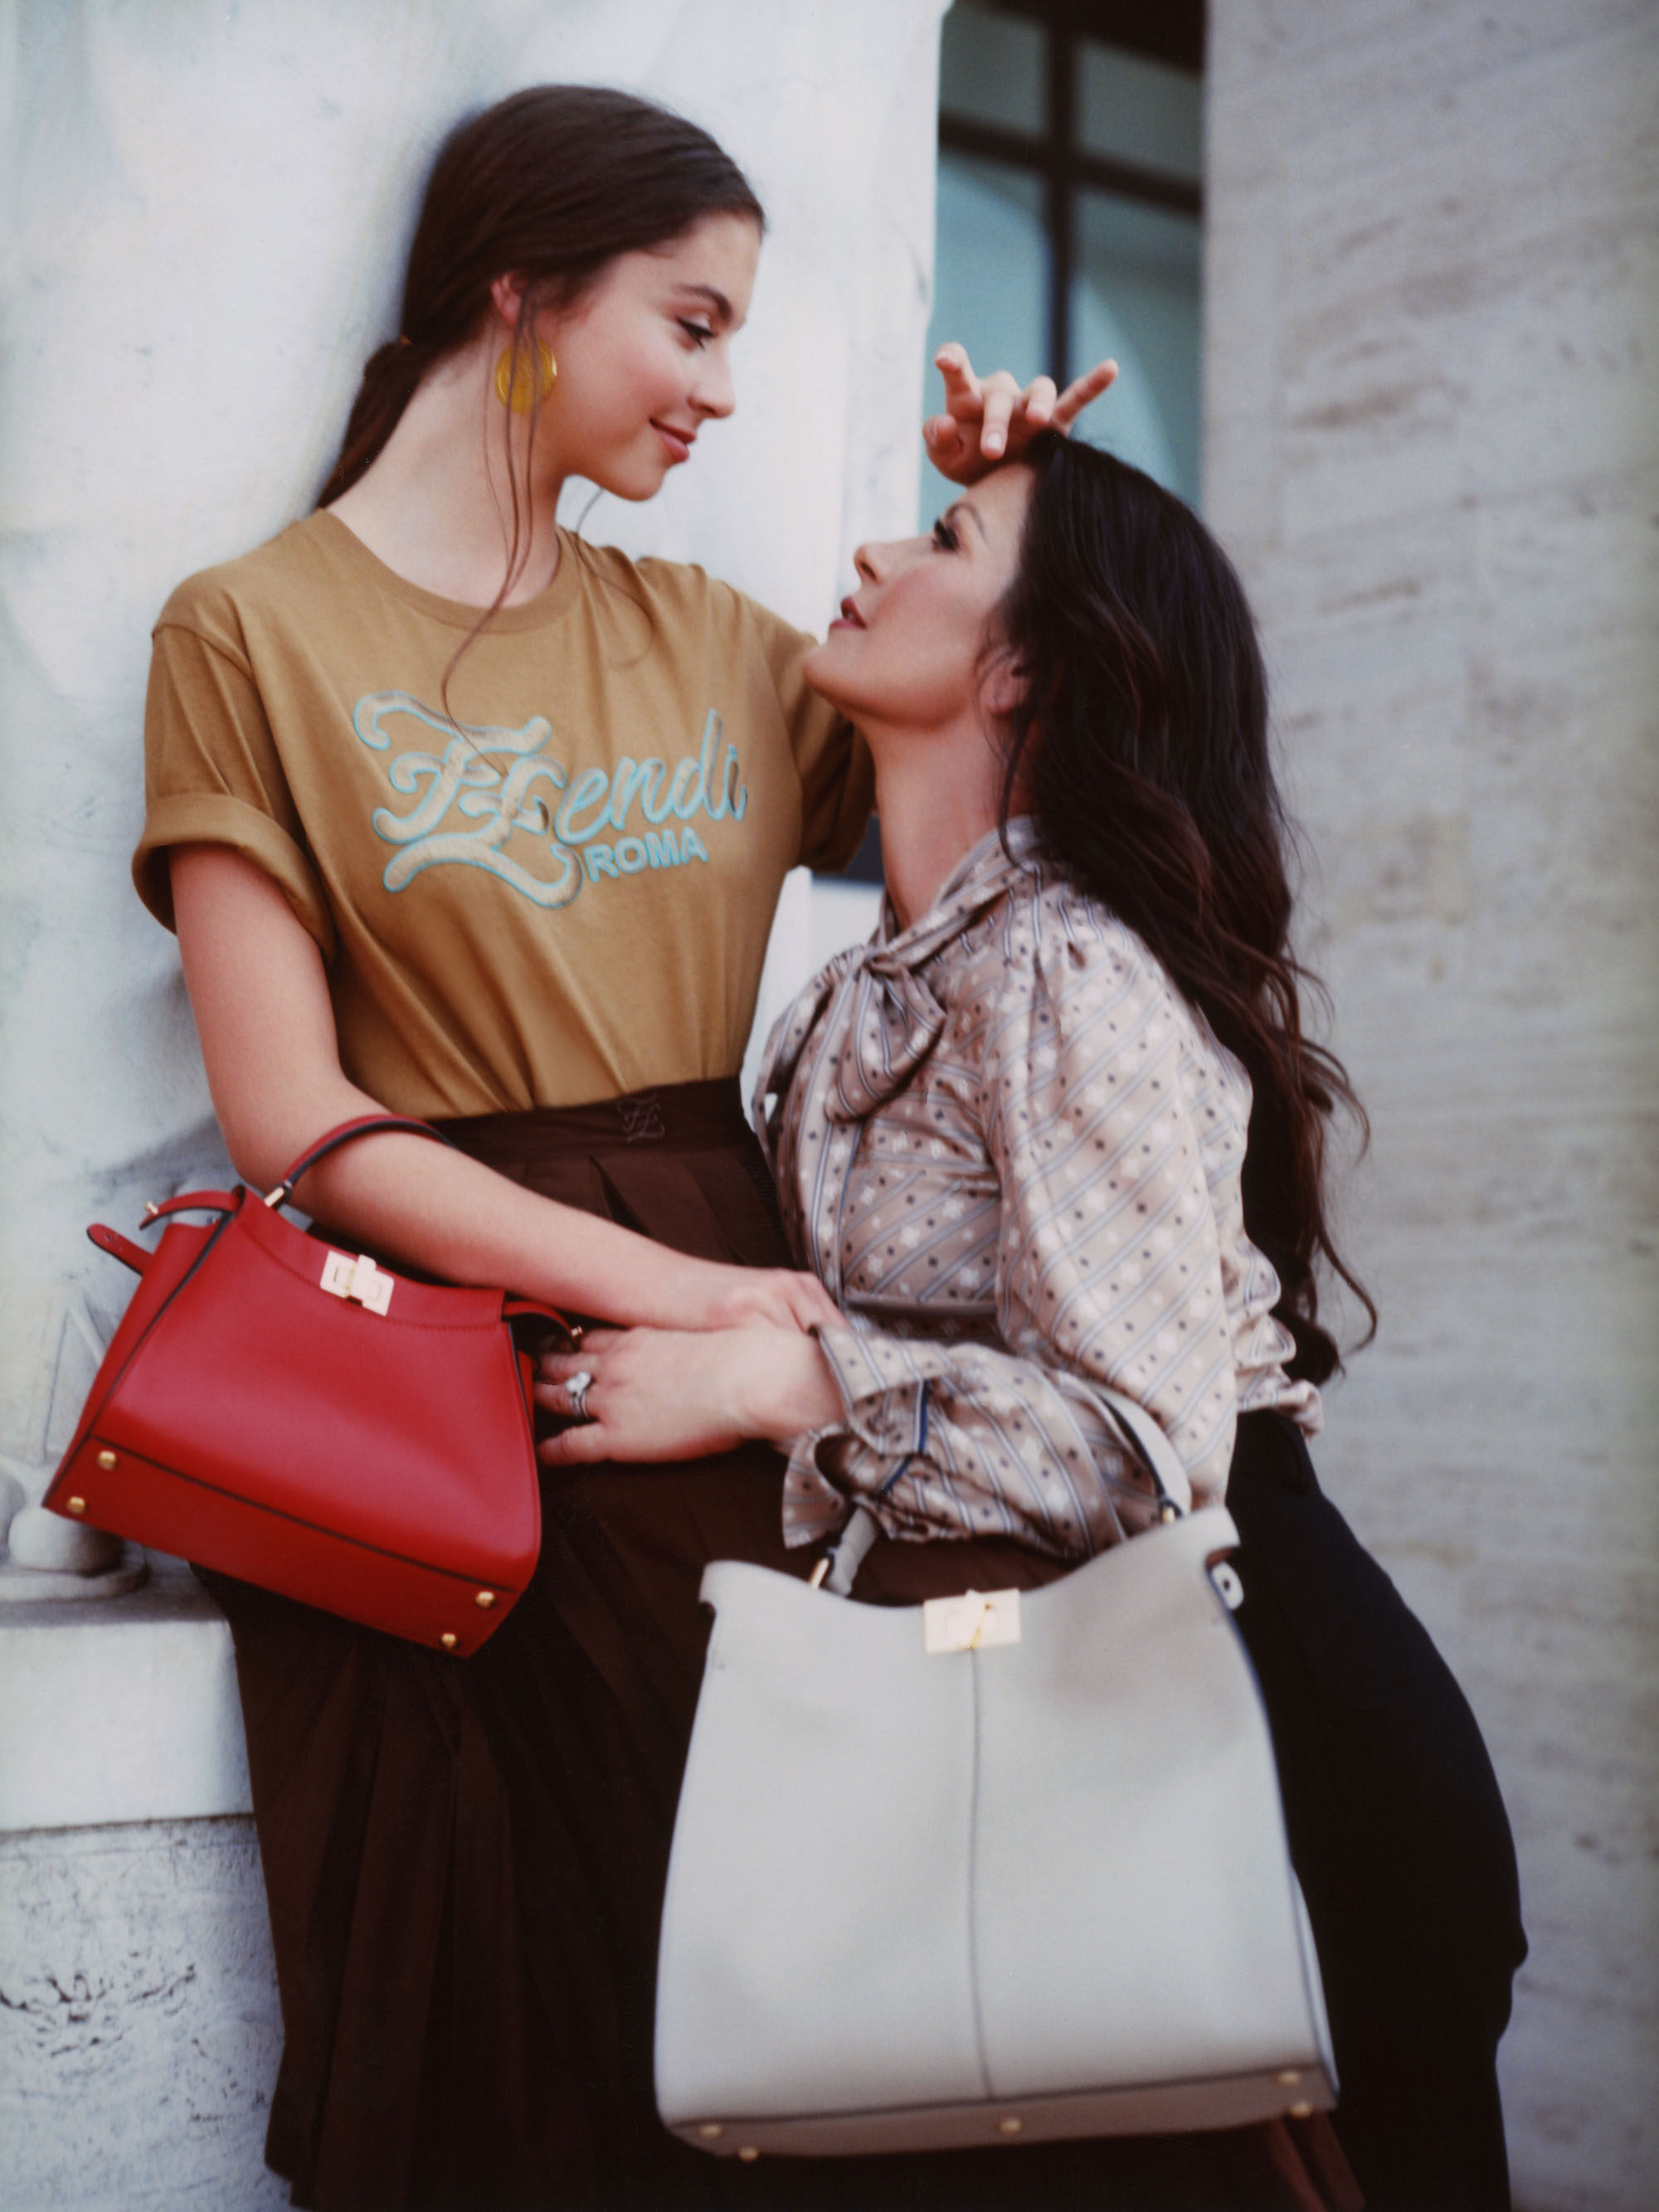 Catherine Zeta-Jones and daughter Carys for Me And My Peekaboo campaign red bag